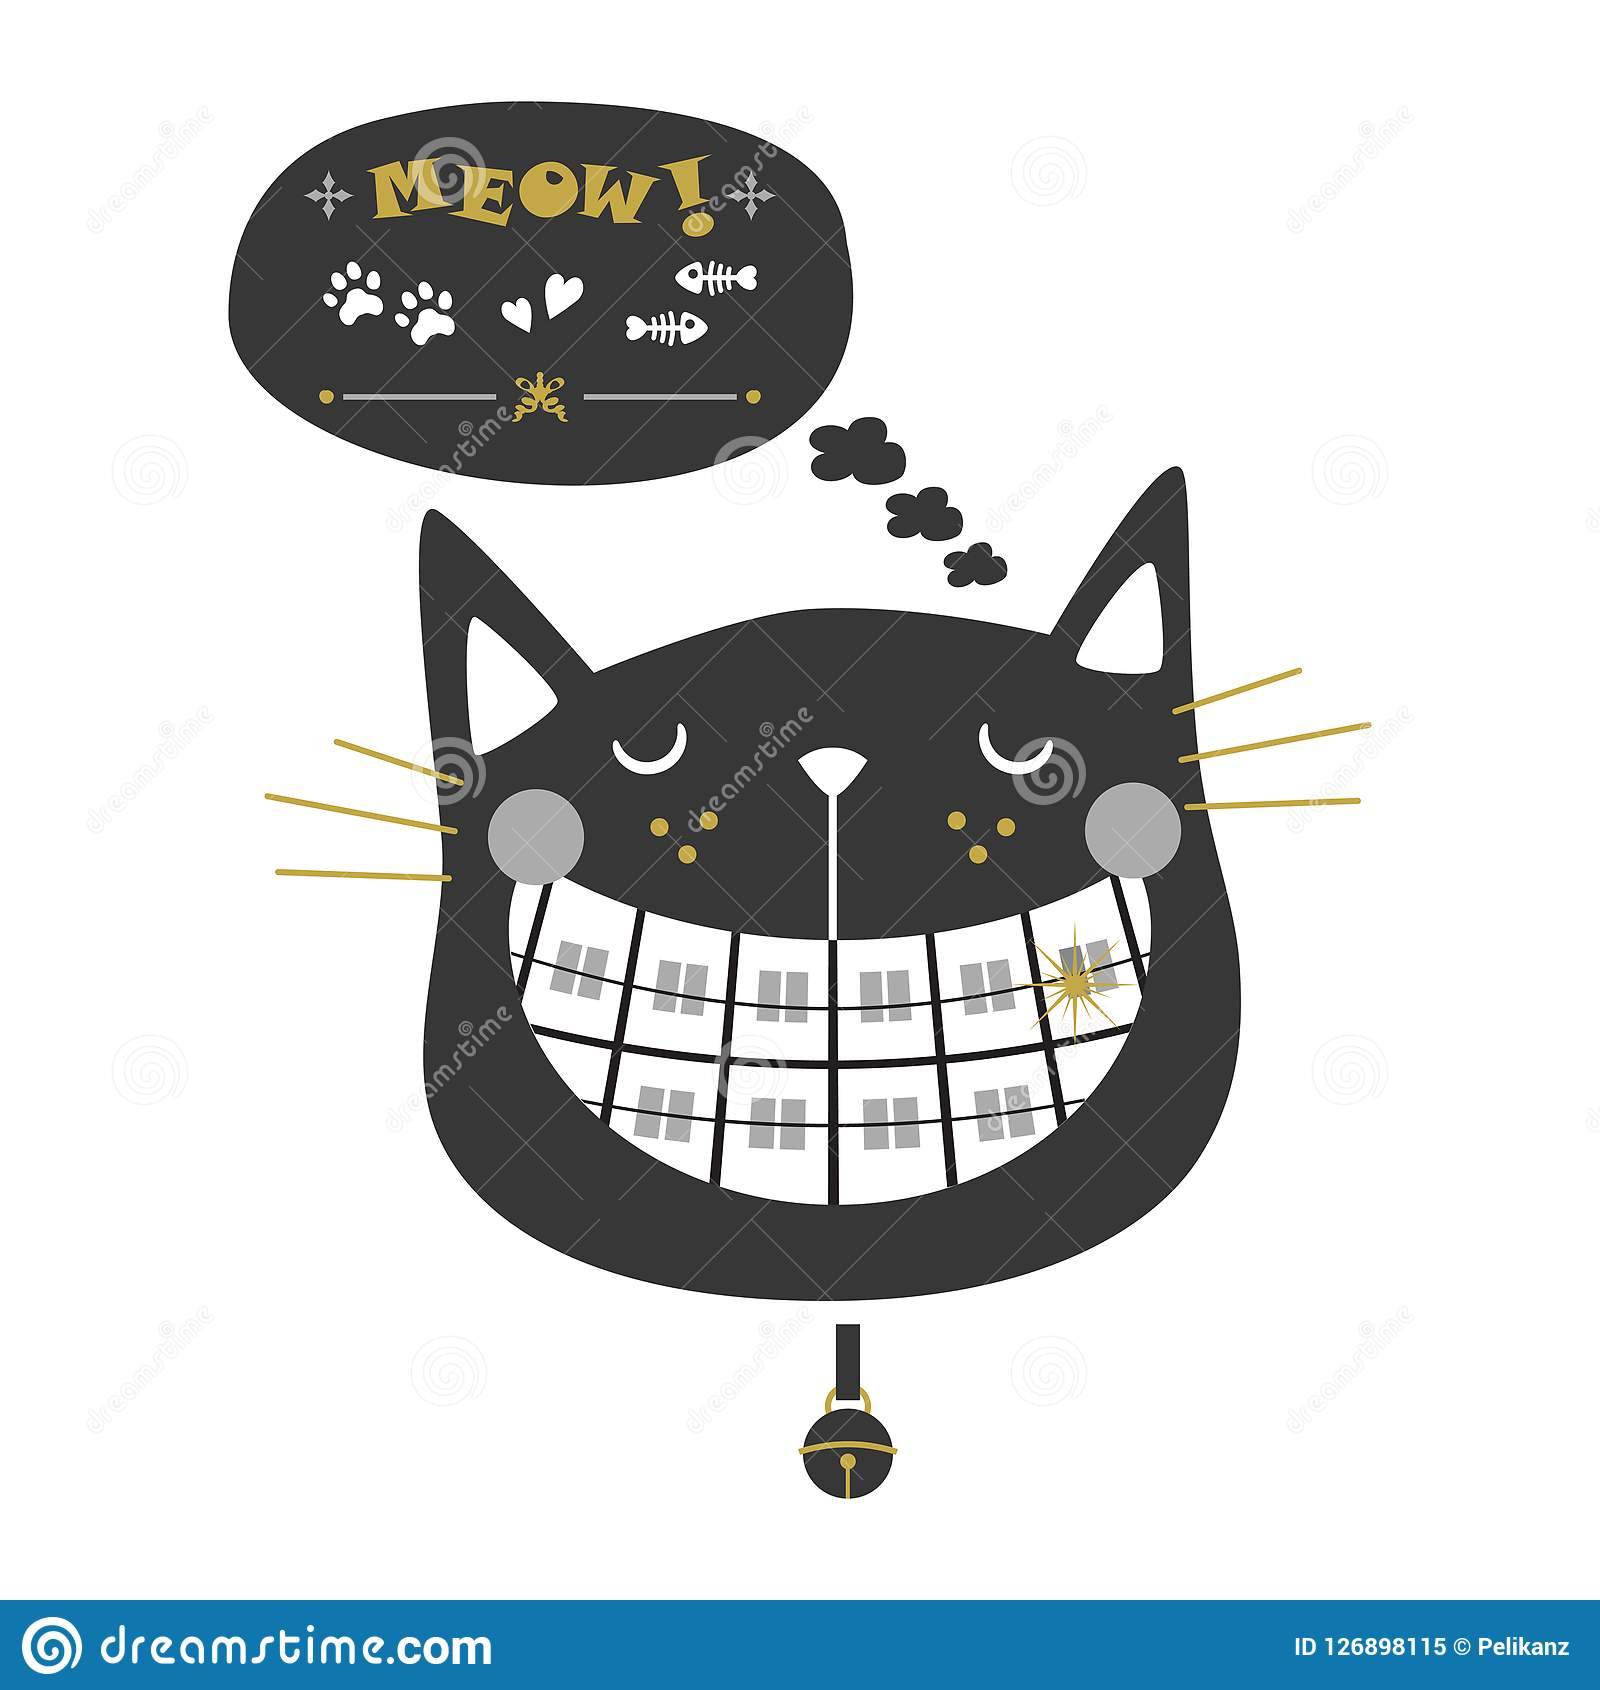 Black silhouette cute laughing orthodontics cat icons with collar bell and speech bubble